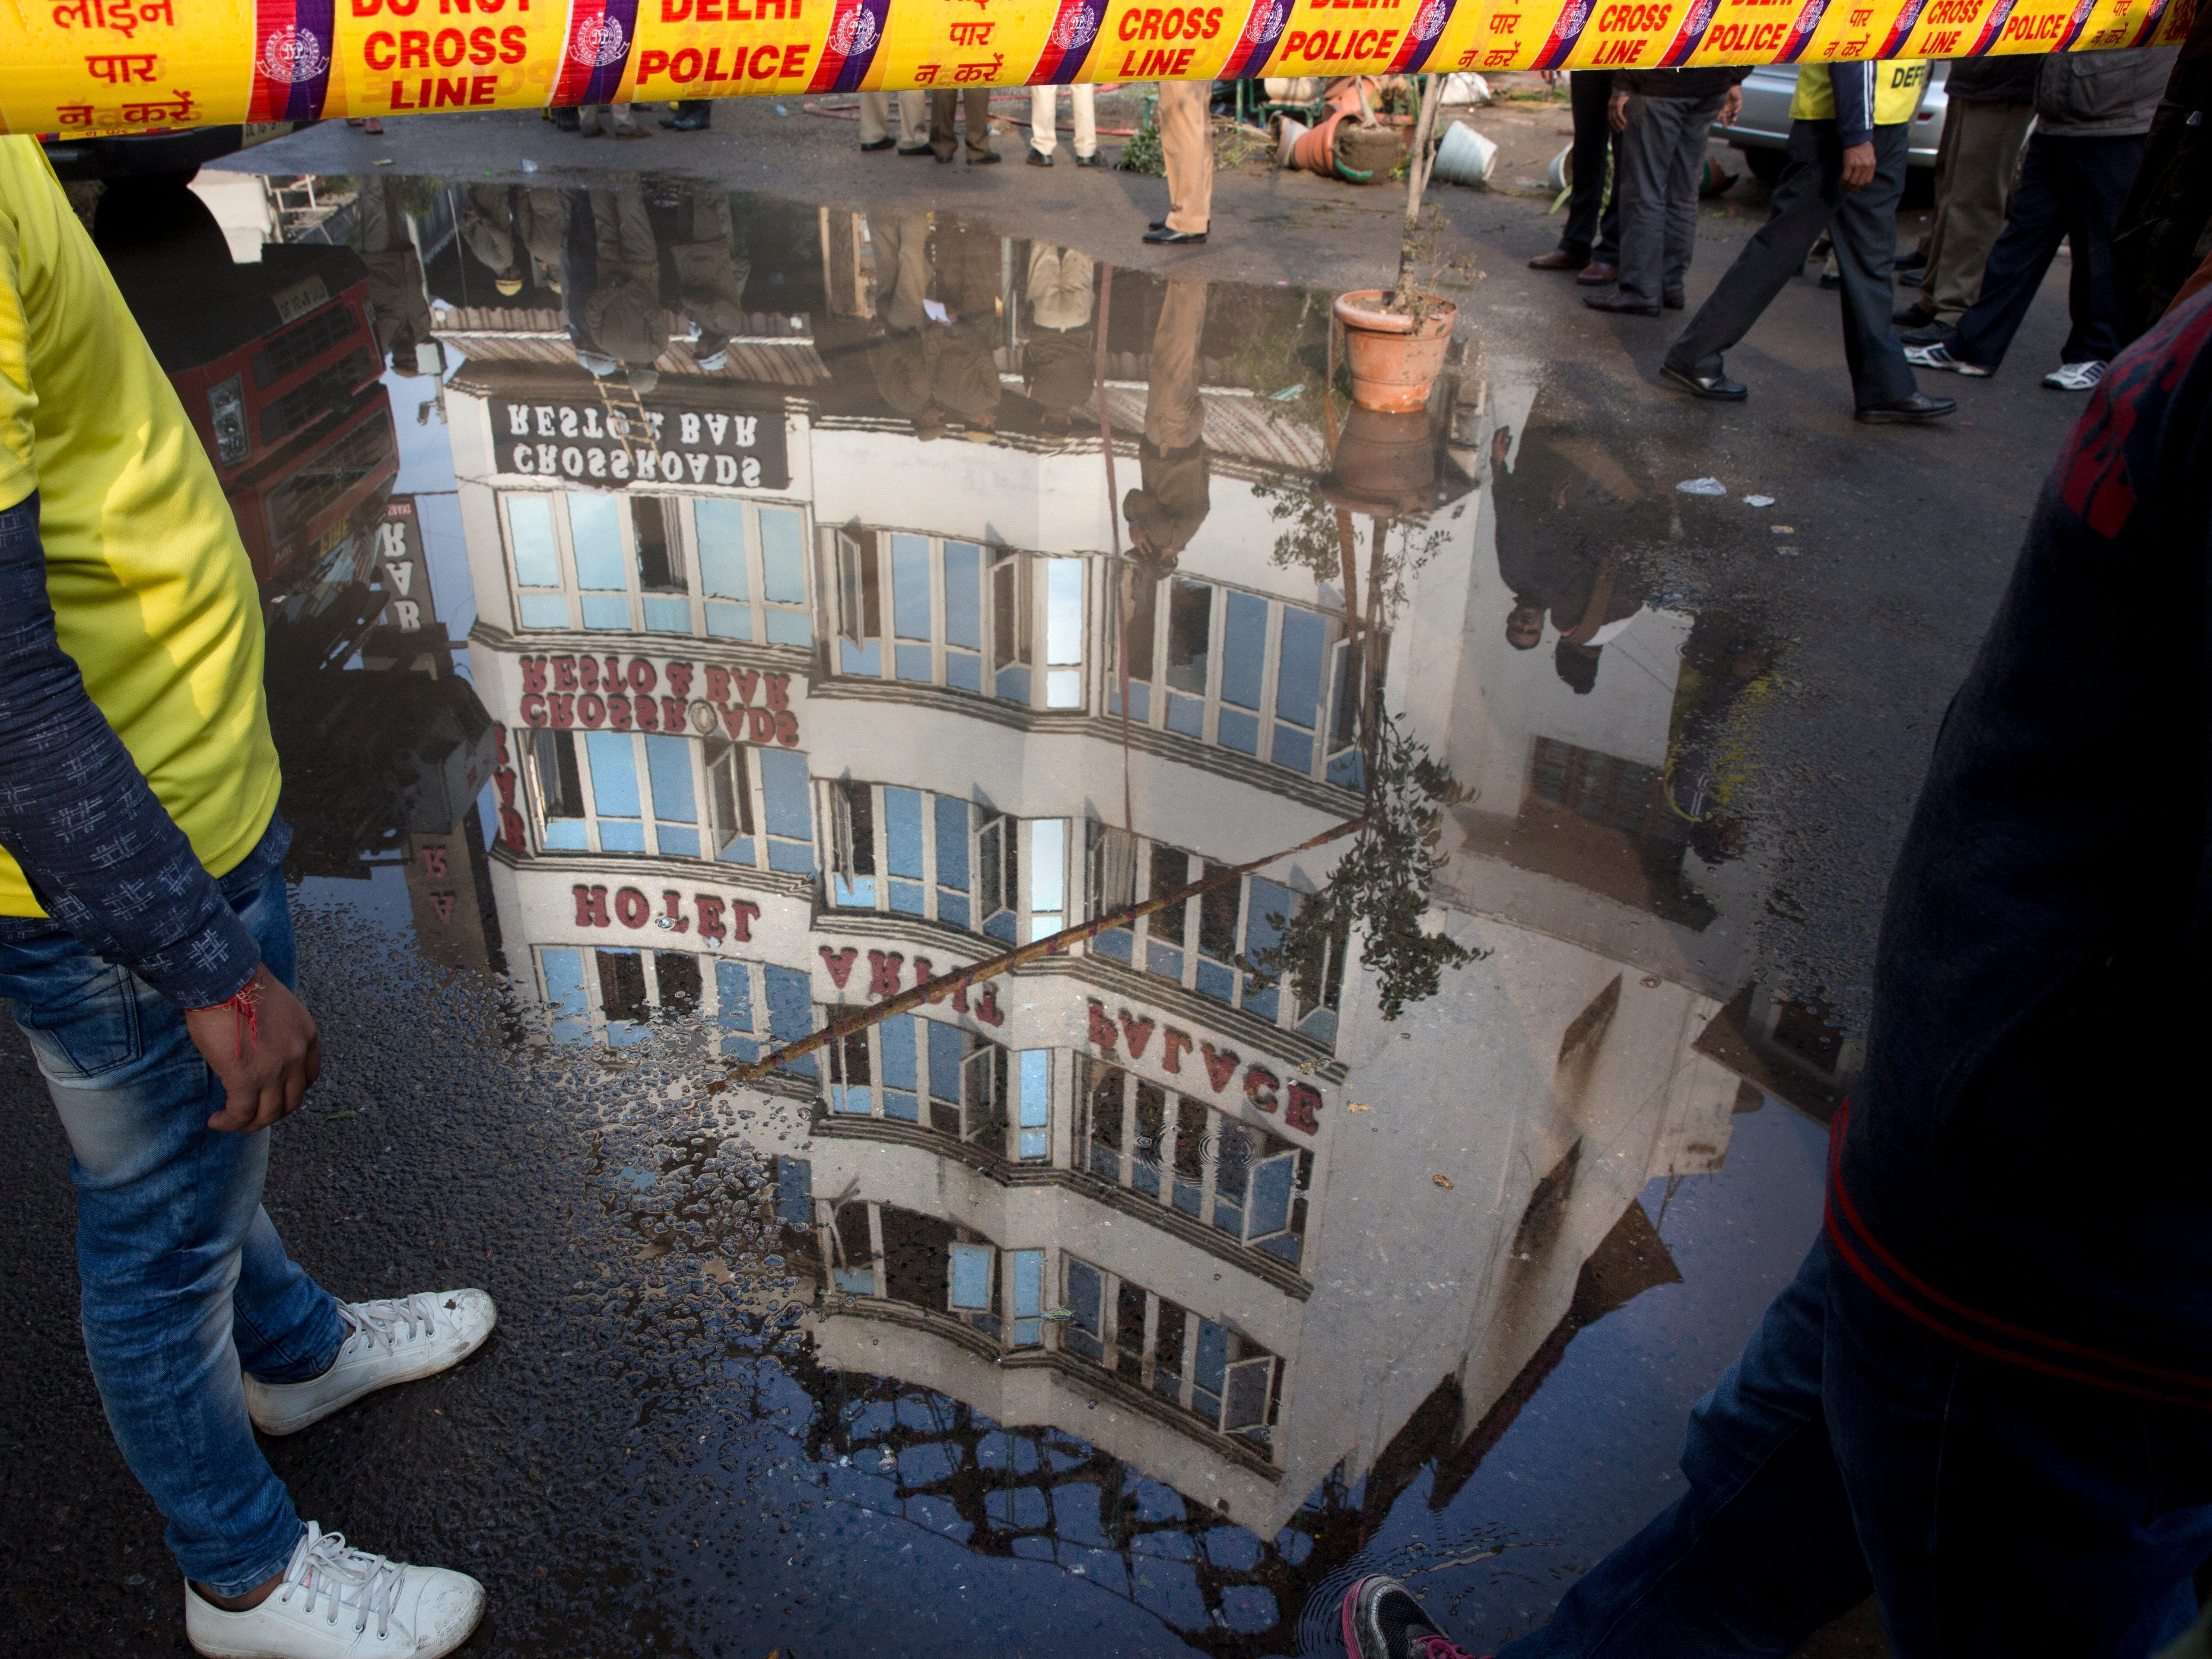 The Arpit Palace Hotel is reflected in a puddle after an early morning fire there killed more than a dozen people in the Karol Bagh neighborhood of New Delhi, India, Tuesday, Feb. 12, 2019.